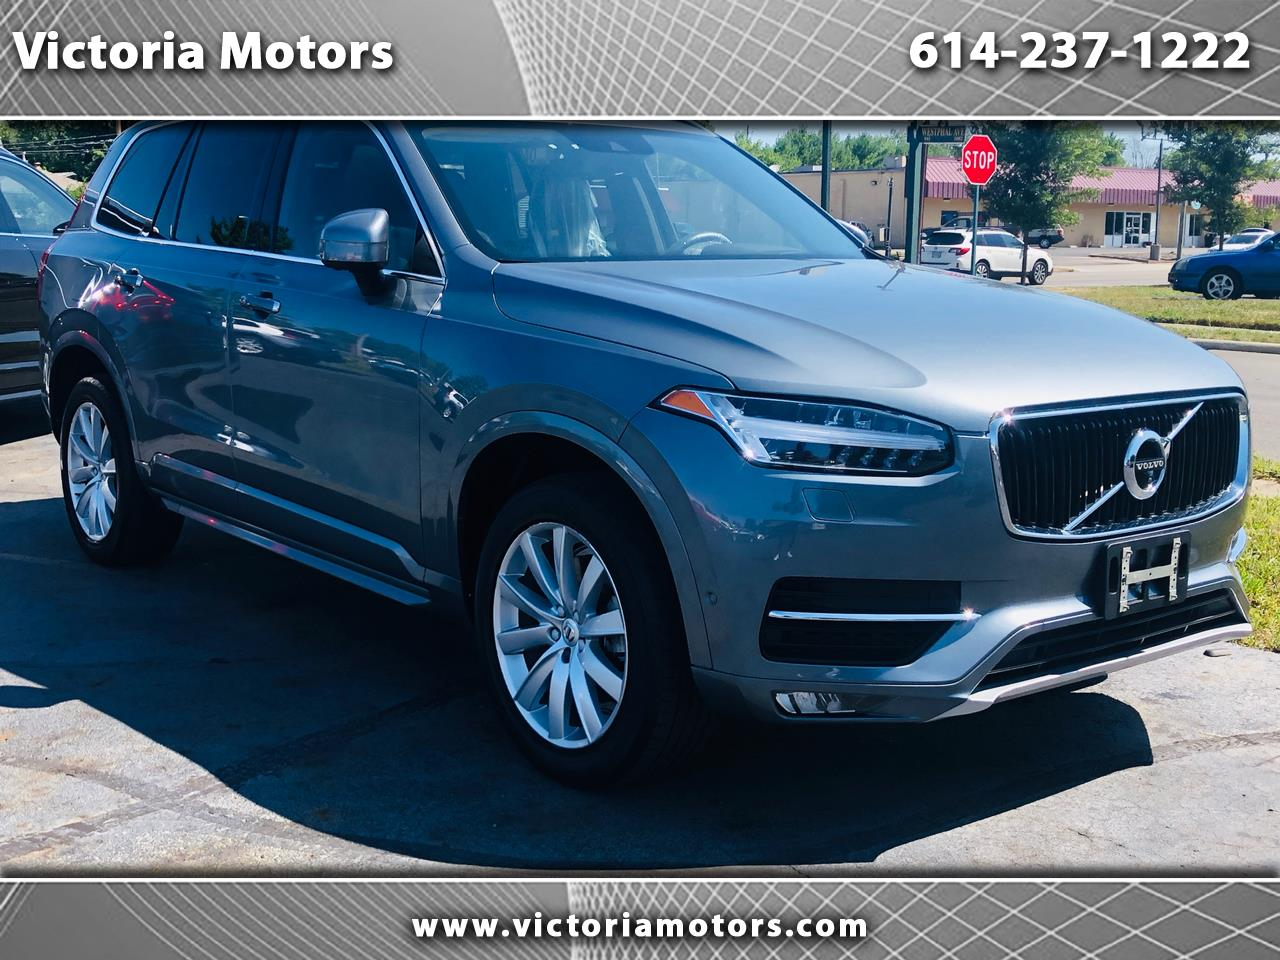 2016 Volvo XC90 AWD 4dr T6 Momentum